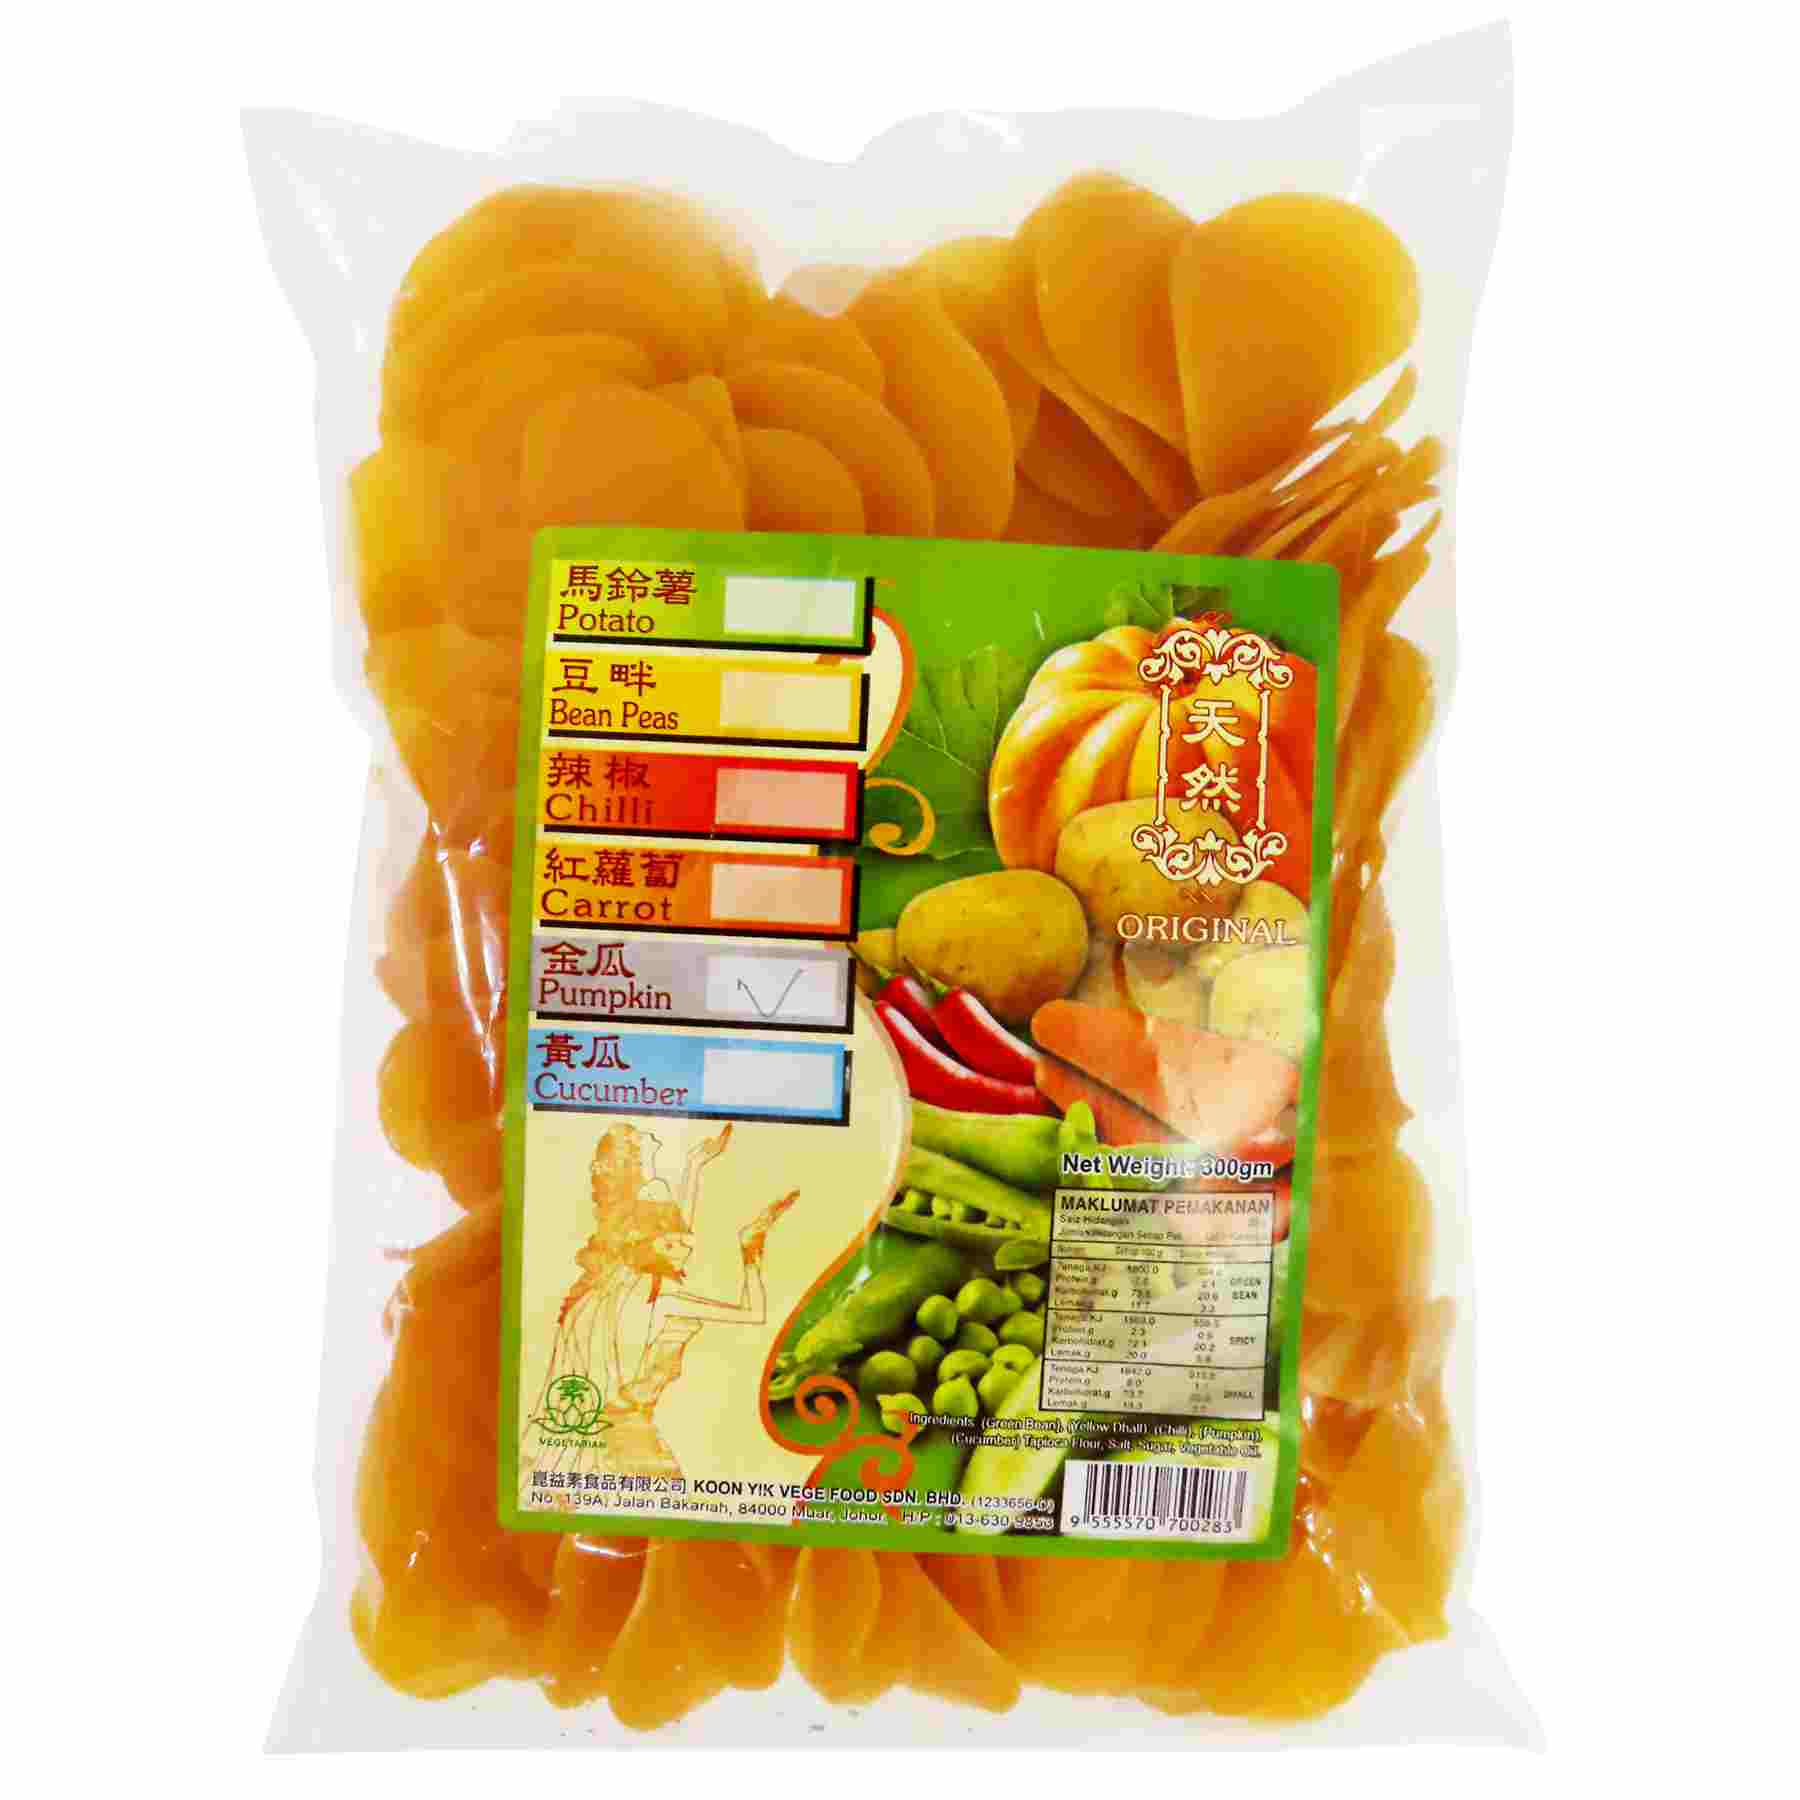 Image KY Original Pumpkin Crackers 昆益 - 天然金瓜生片 300grams